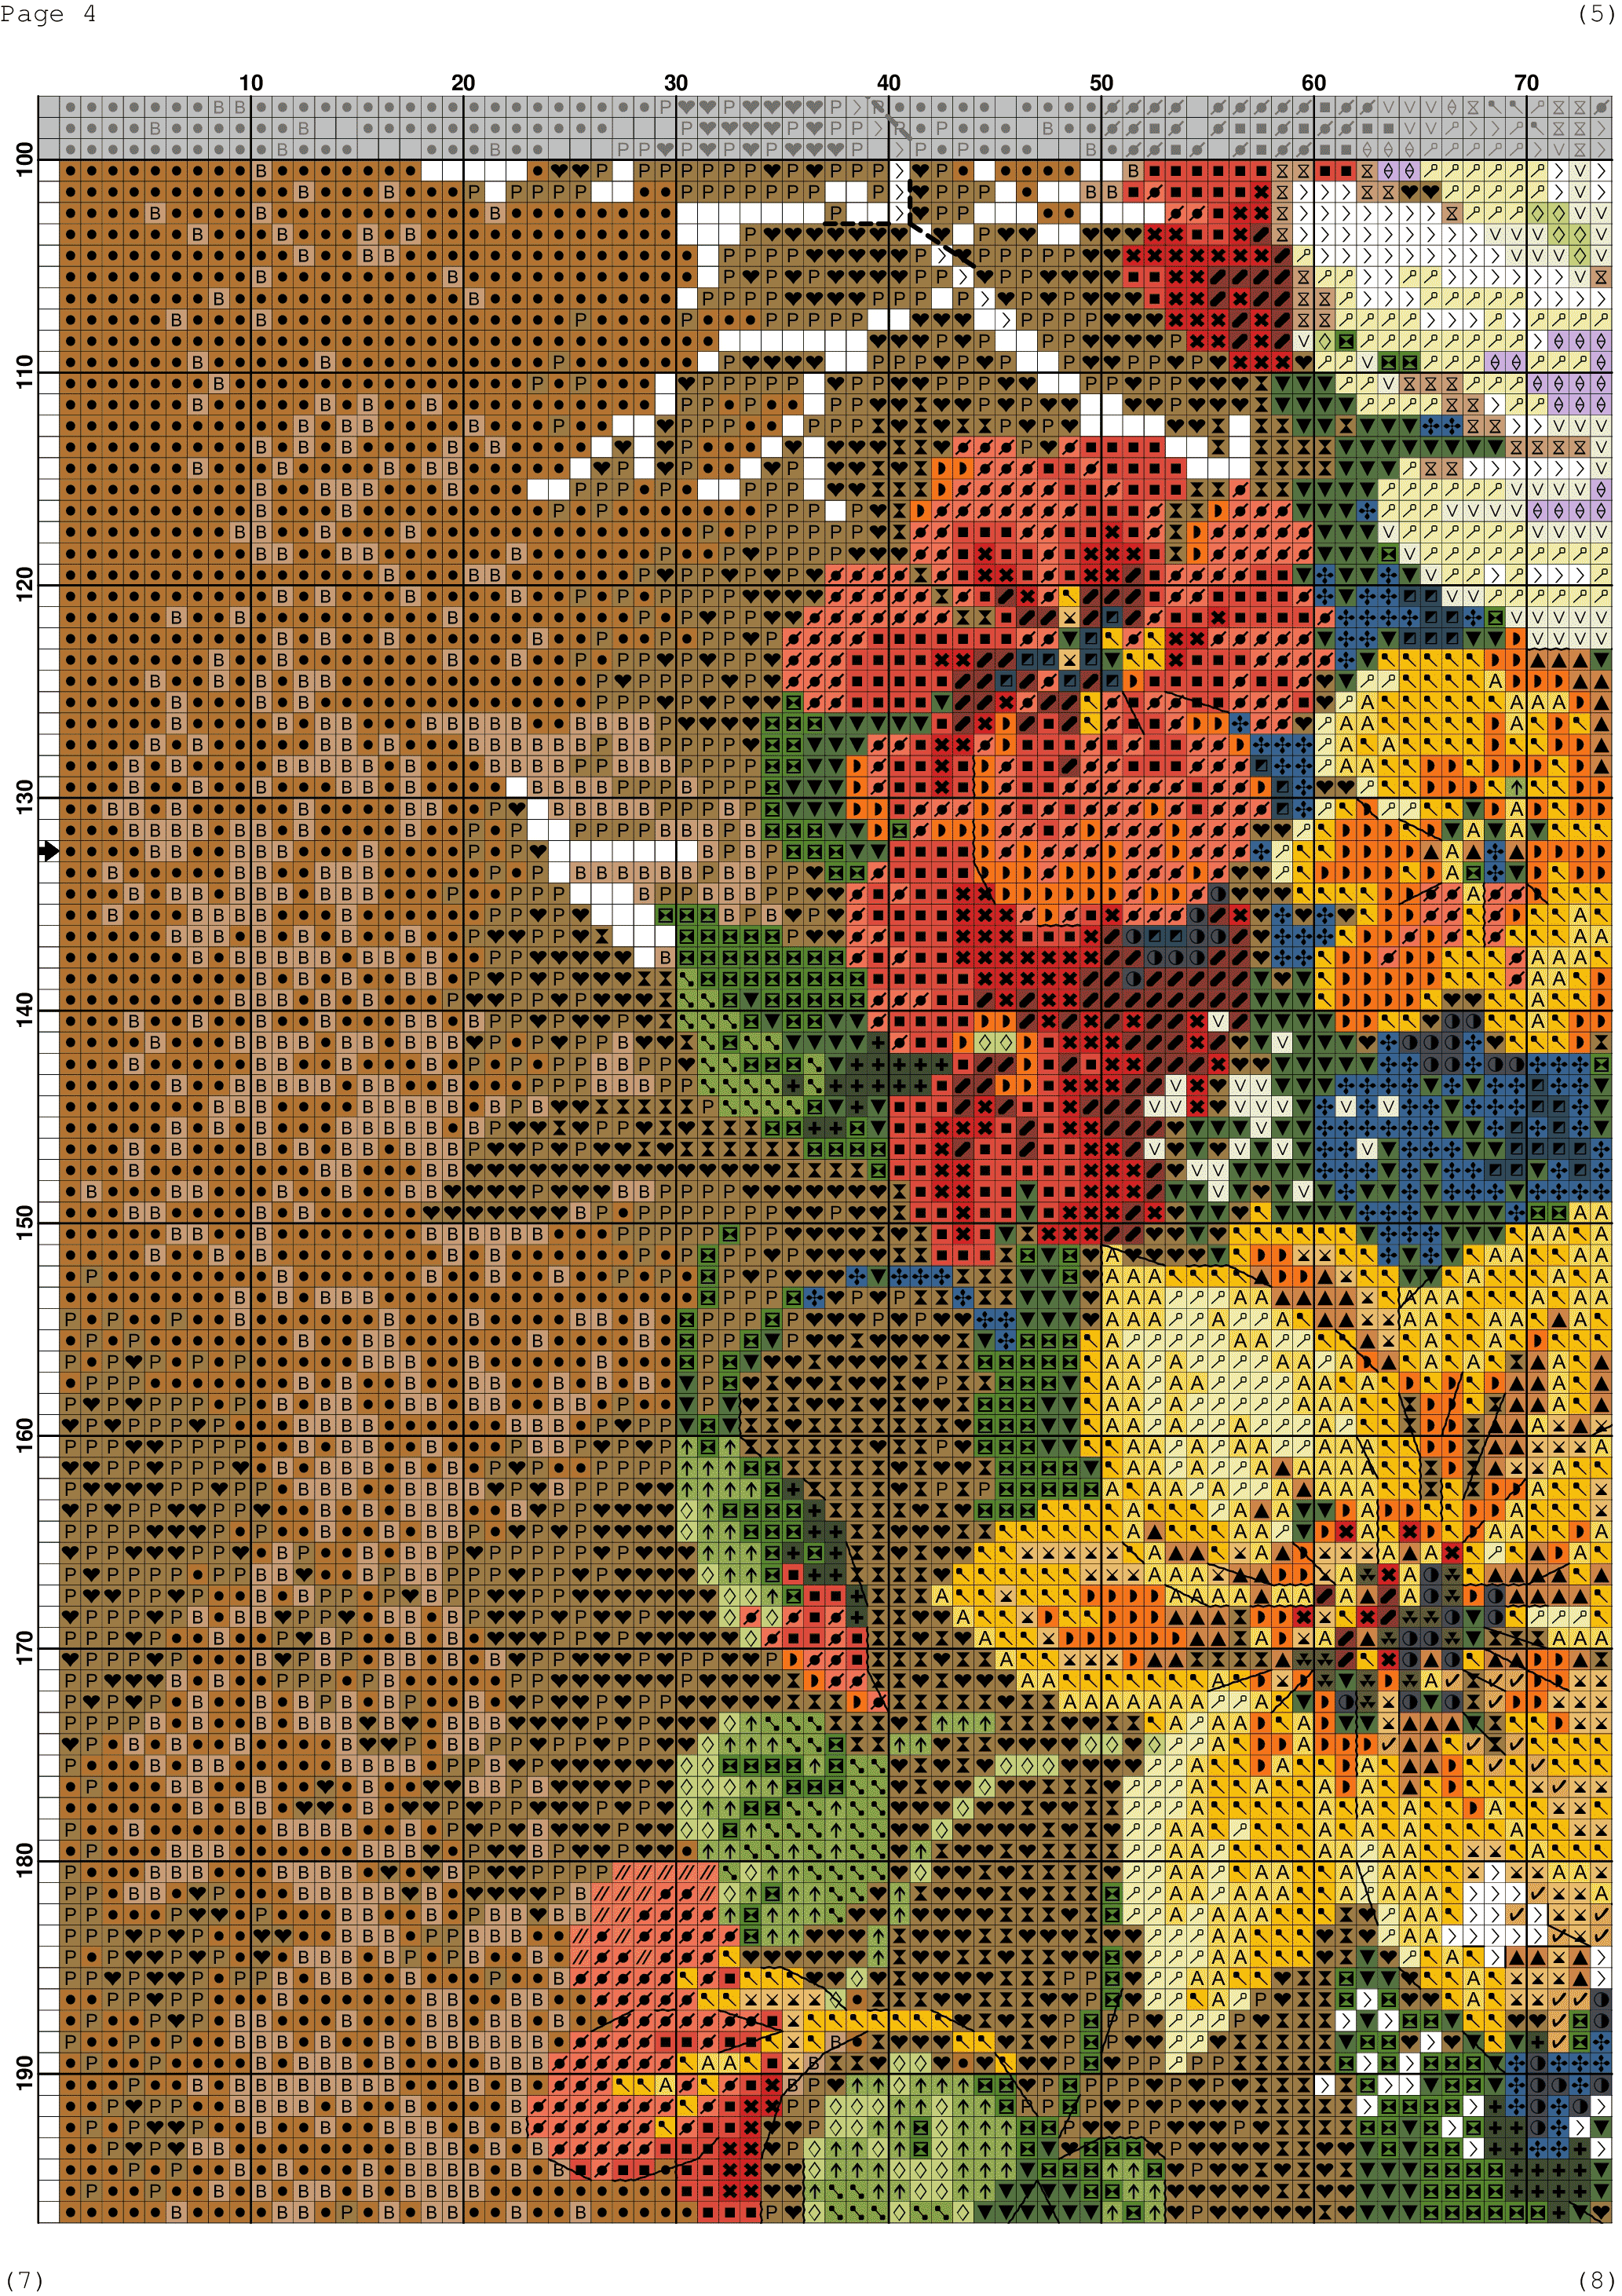 wildflowers-cross-stitch-patterns-(5)